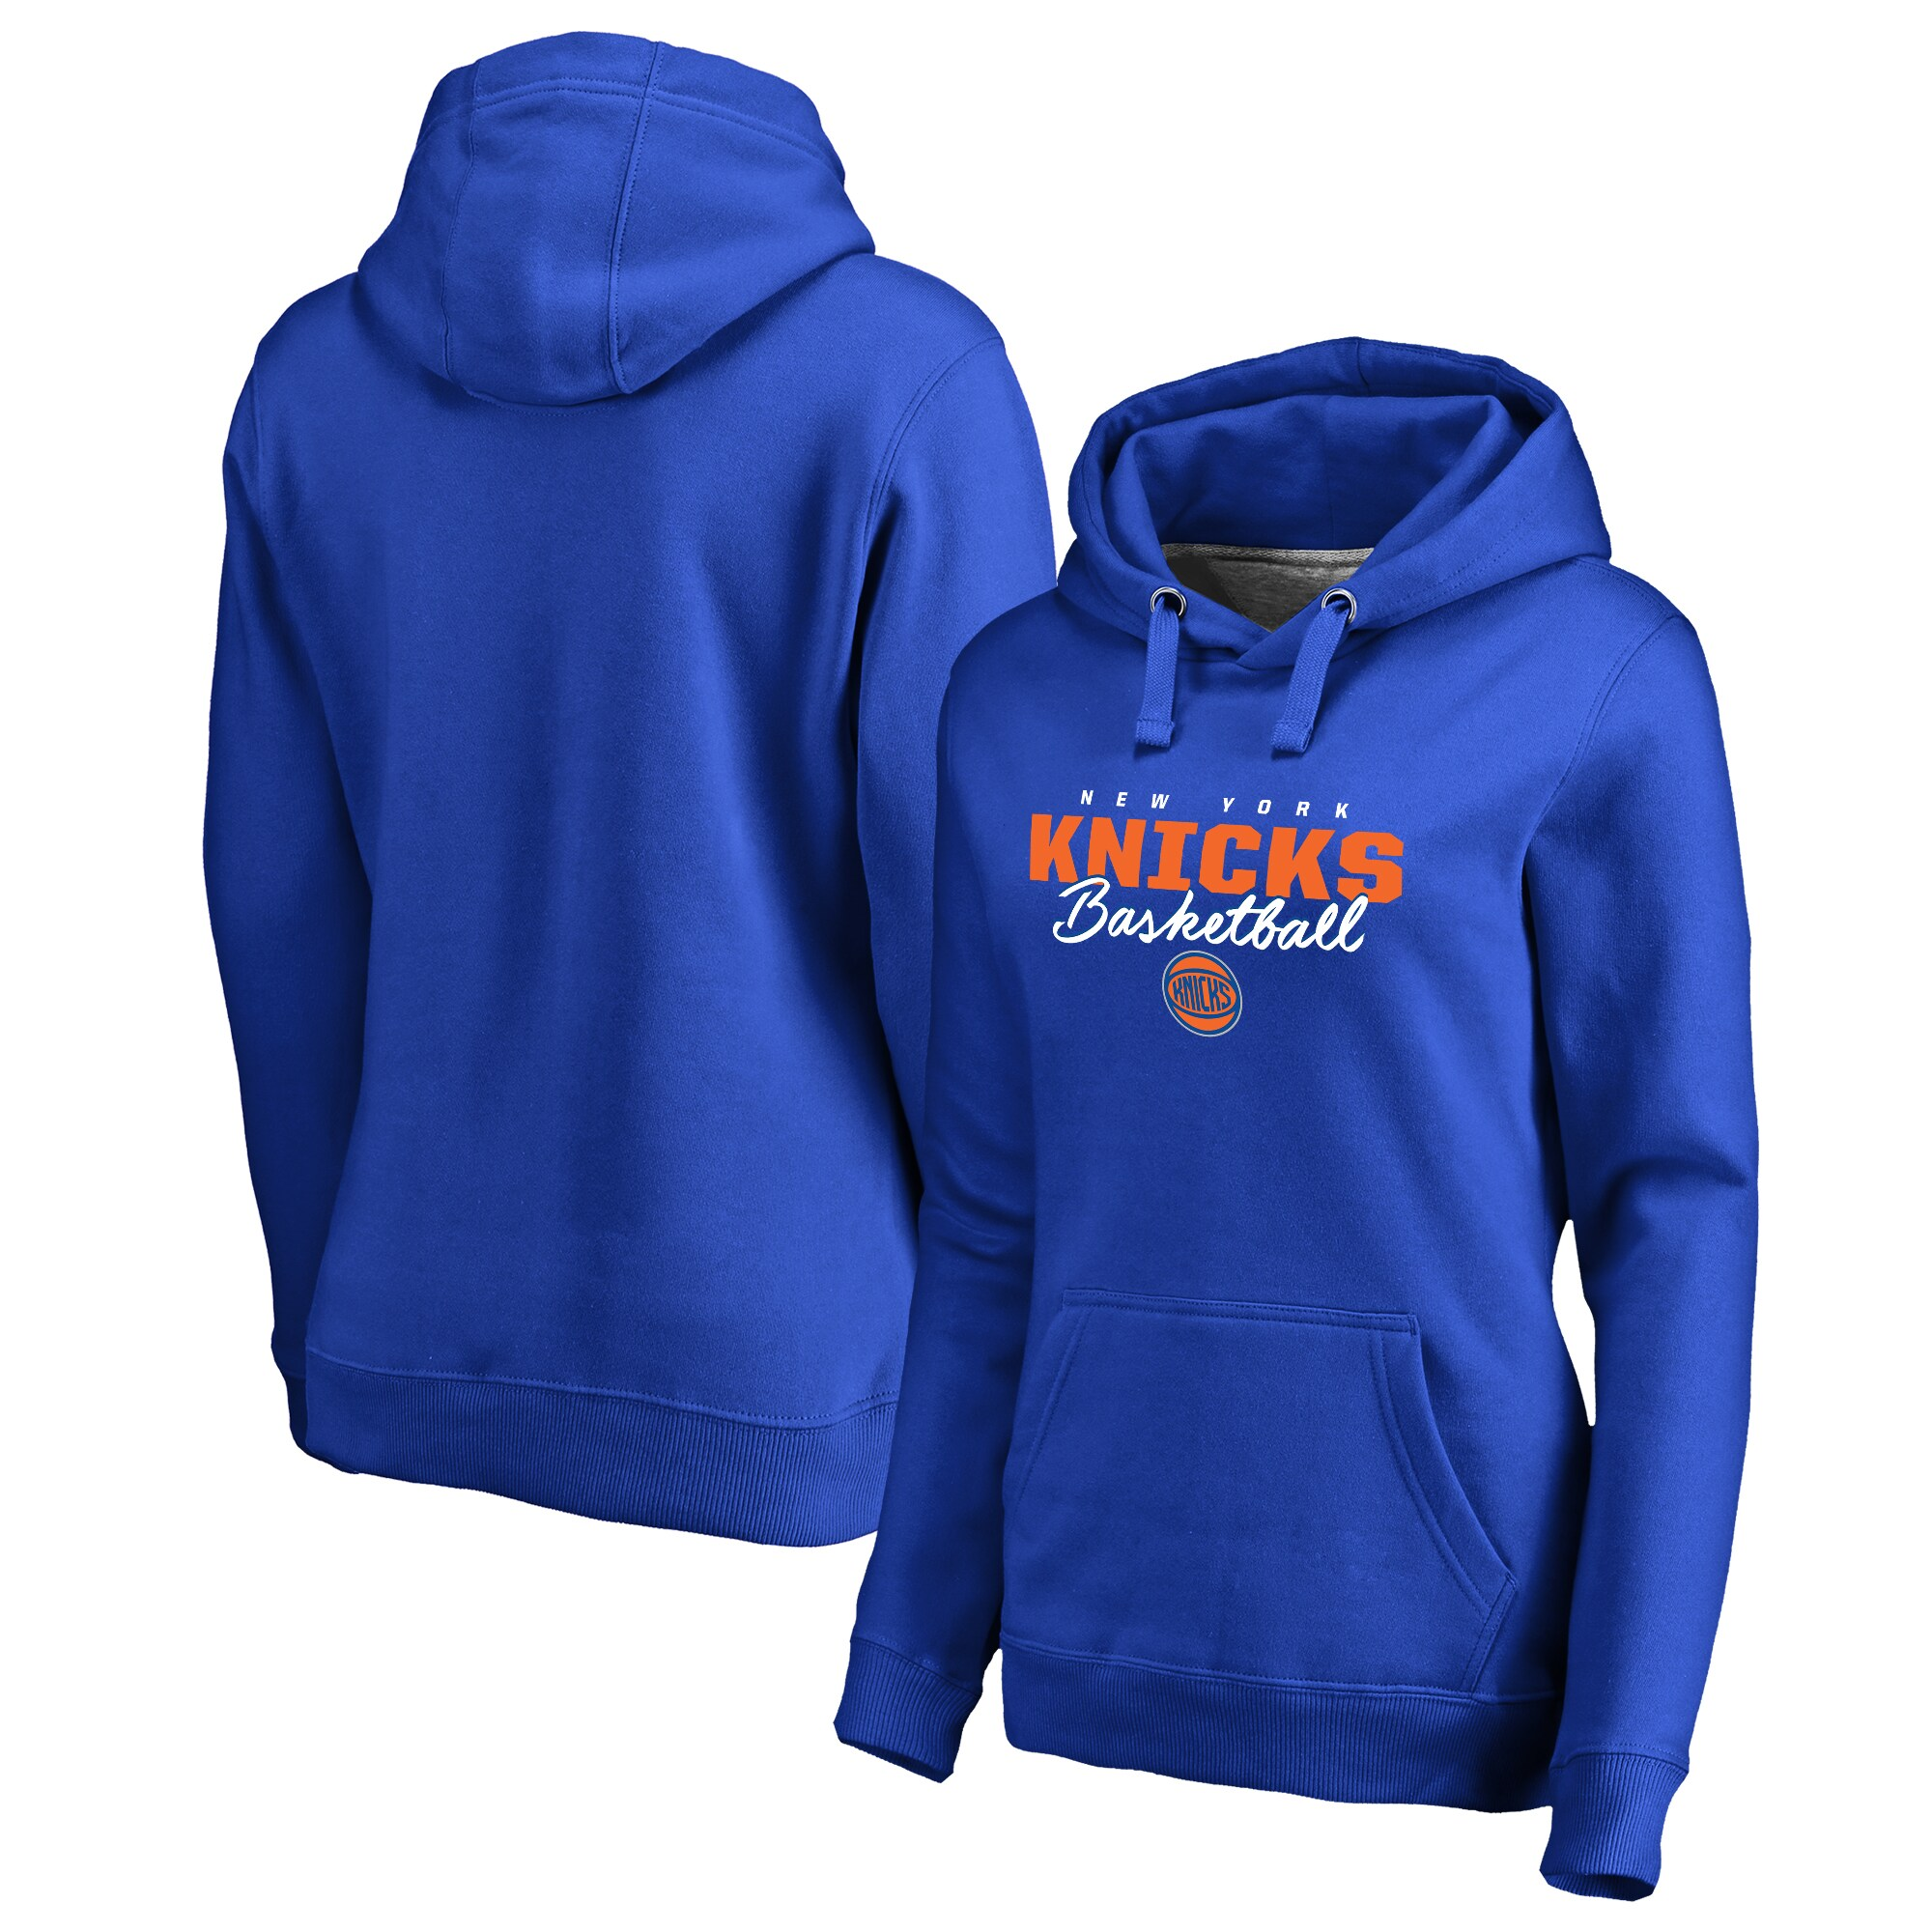 New York Knicks Fanatics Branded Women's Script Assist Plus Size Pullover Hoodie - Royal